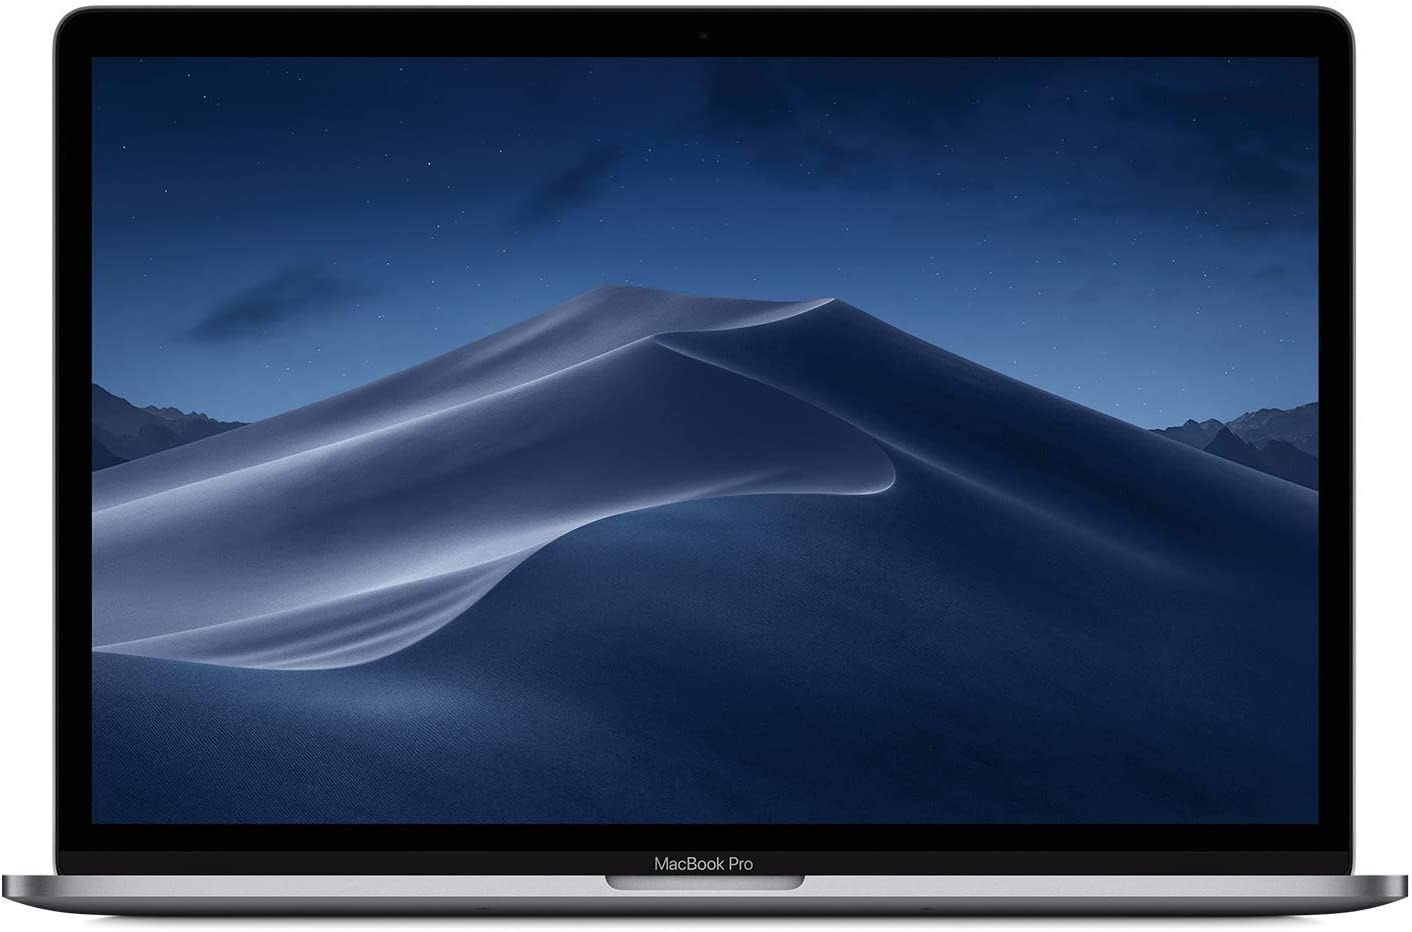 Apple MacBook Pro (15-inch, 2.6GHz 6-core 9th-Generation Intel Core i7 Processor, 256GB) - Space Gray (Renewed)